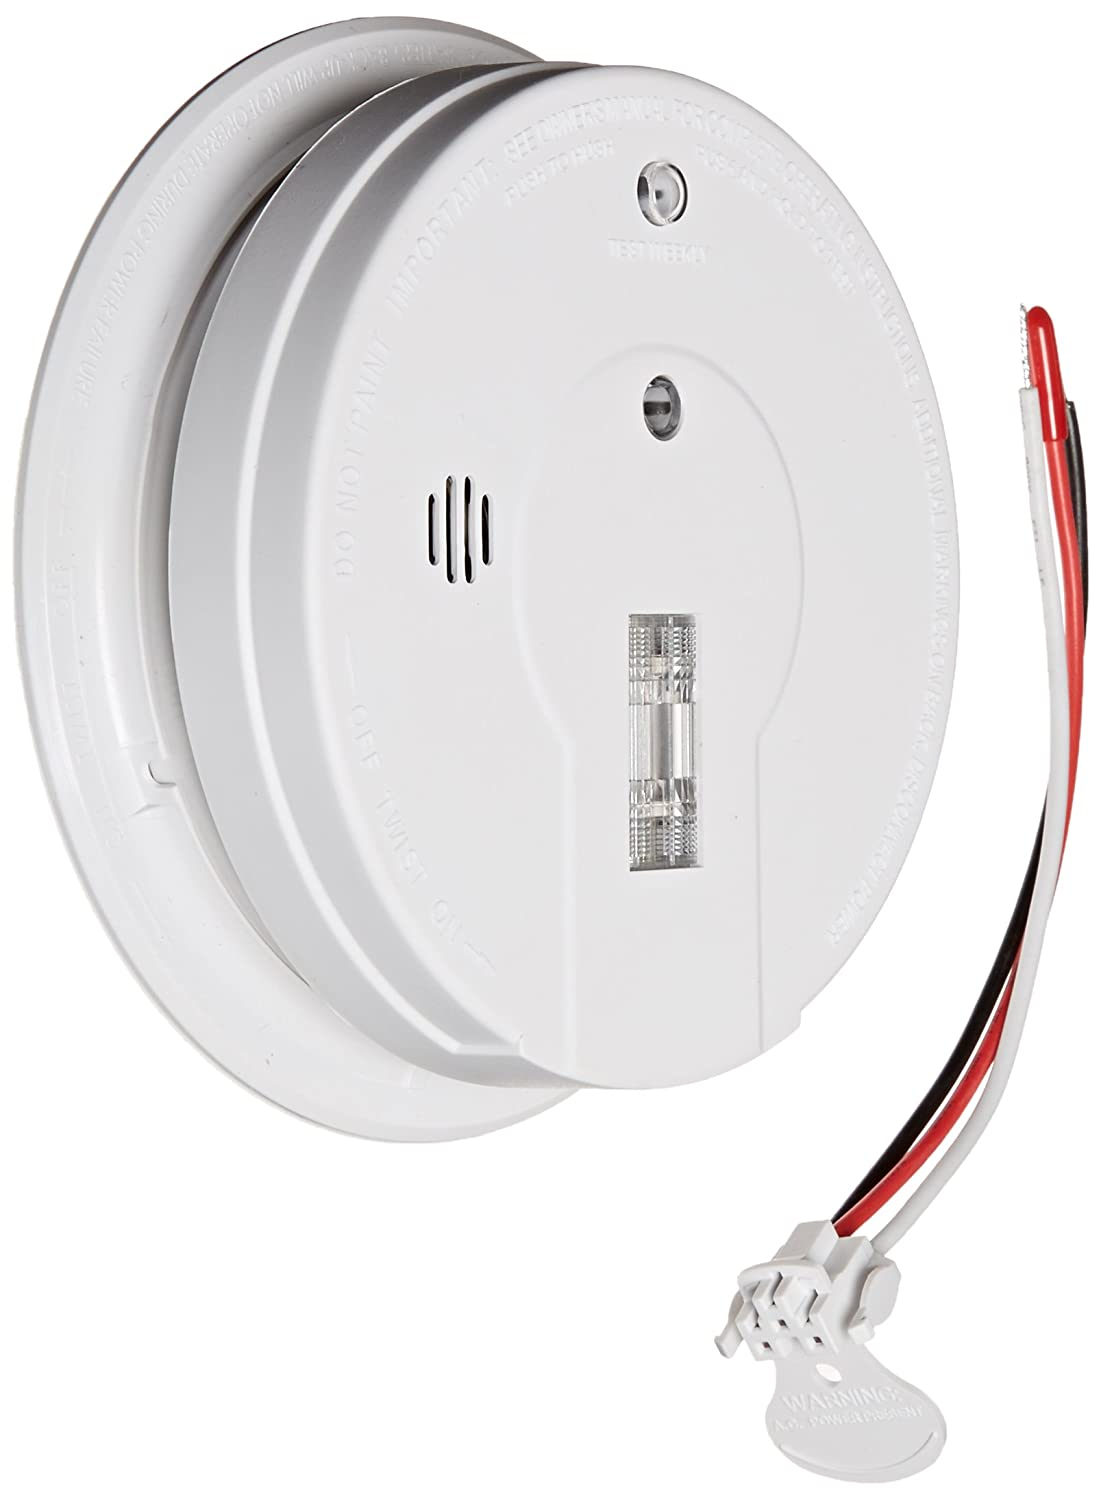 71nY3R822iL._SL1500_ kidde 408 21006379 firex i12080 hardwire smoke alarm with exit  at edmiracle.co